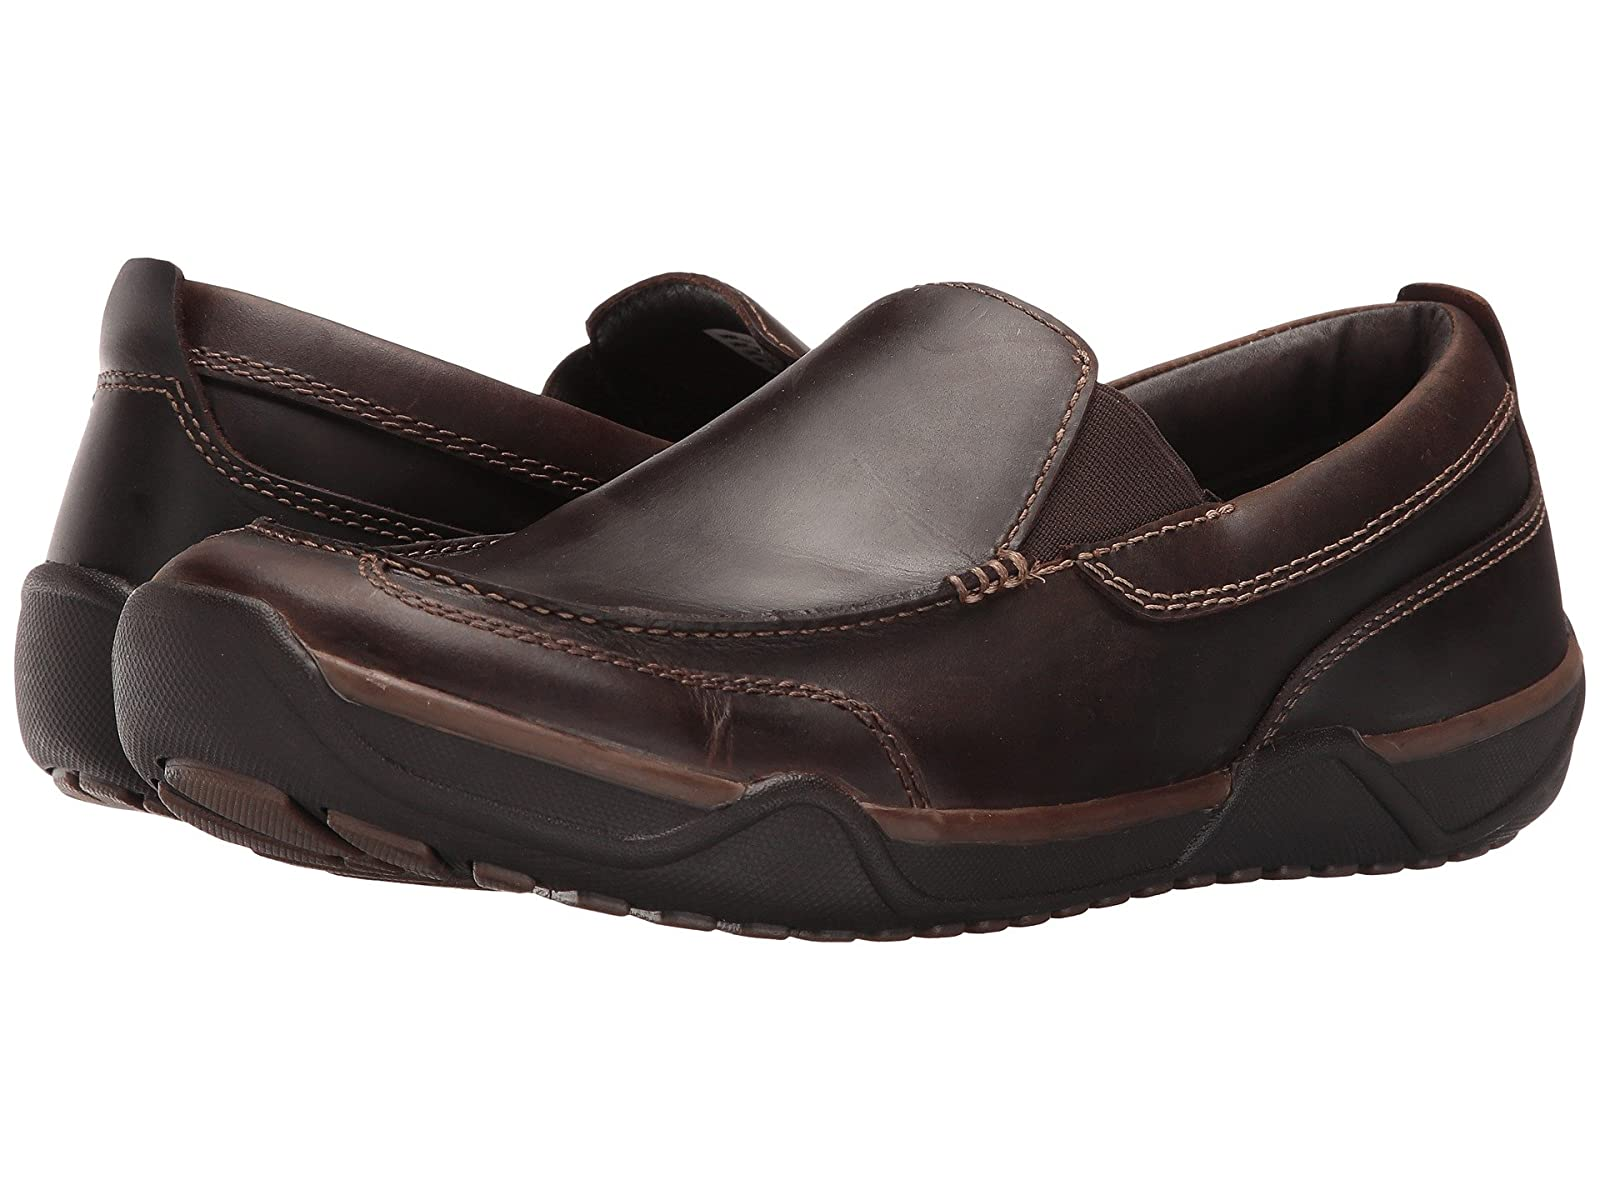 Tempur-Pedic MarkisCheap and distinctive eye-catching shoes